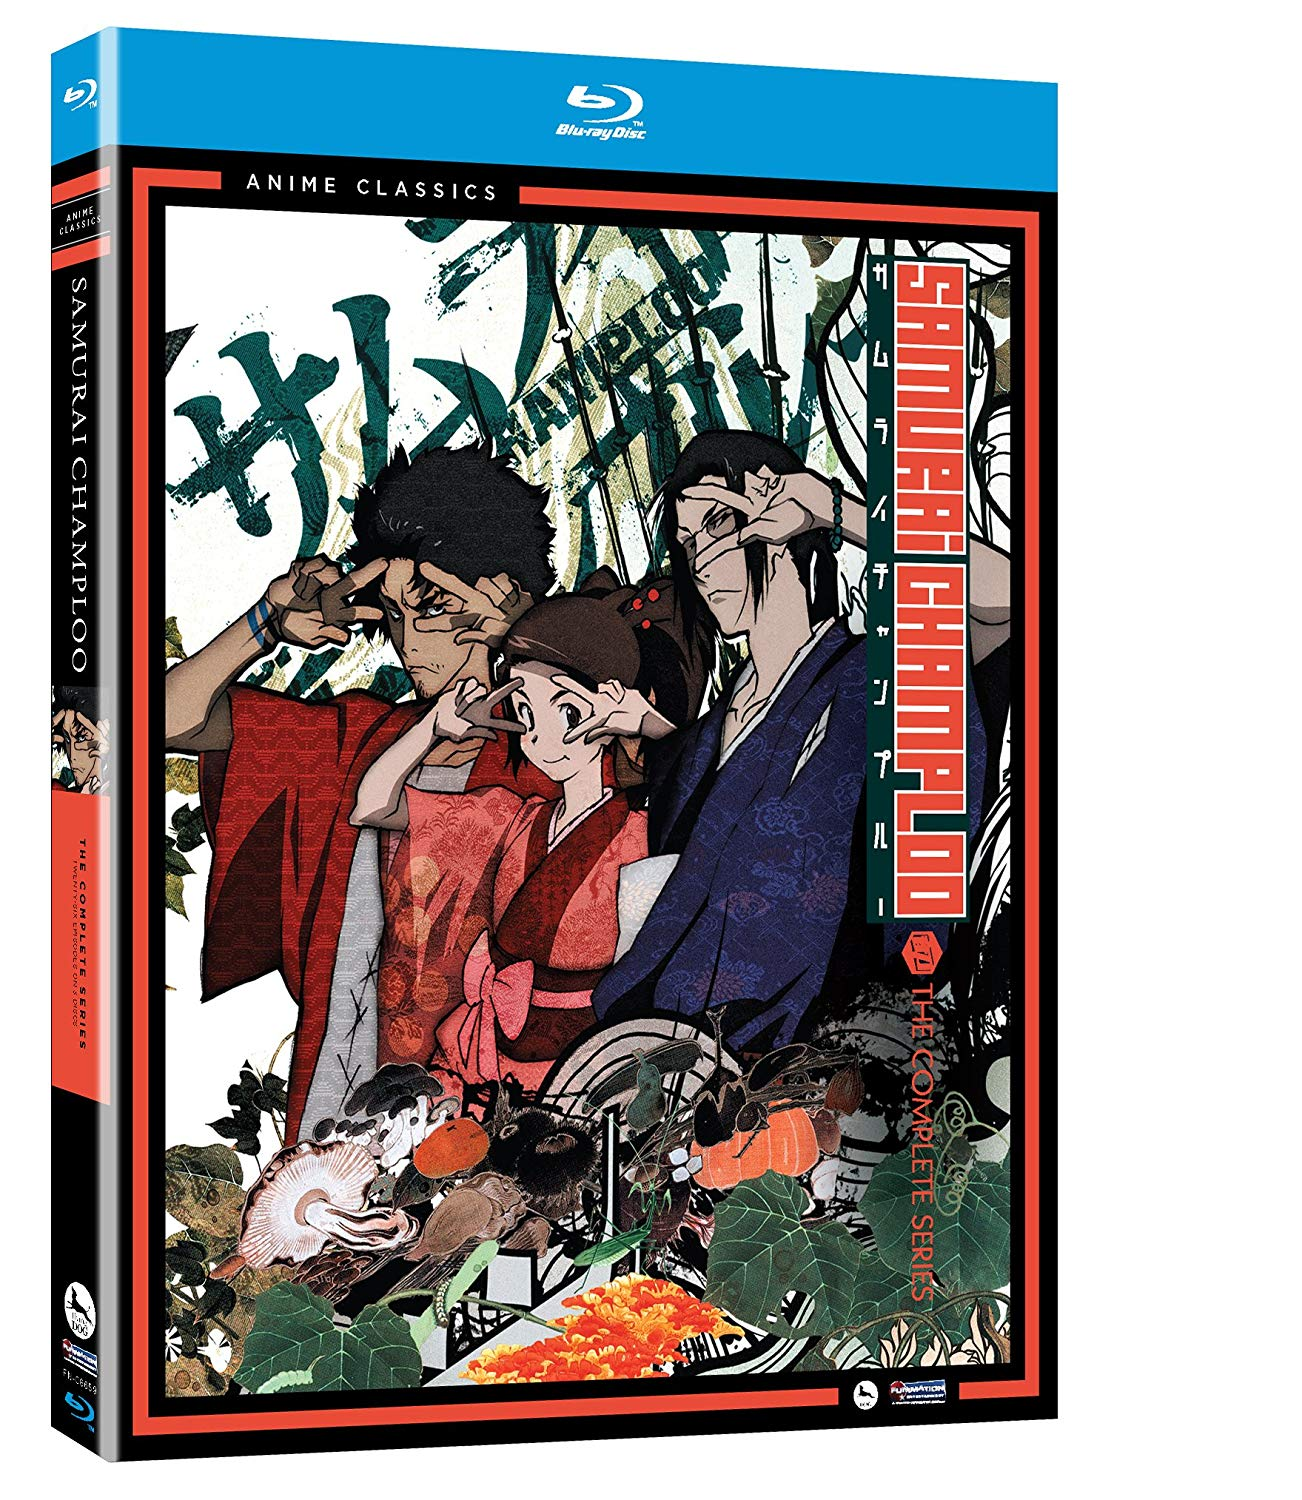 Anime cover: Samurai Champloo